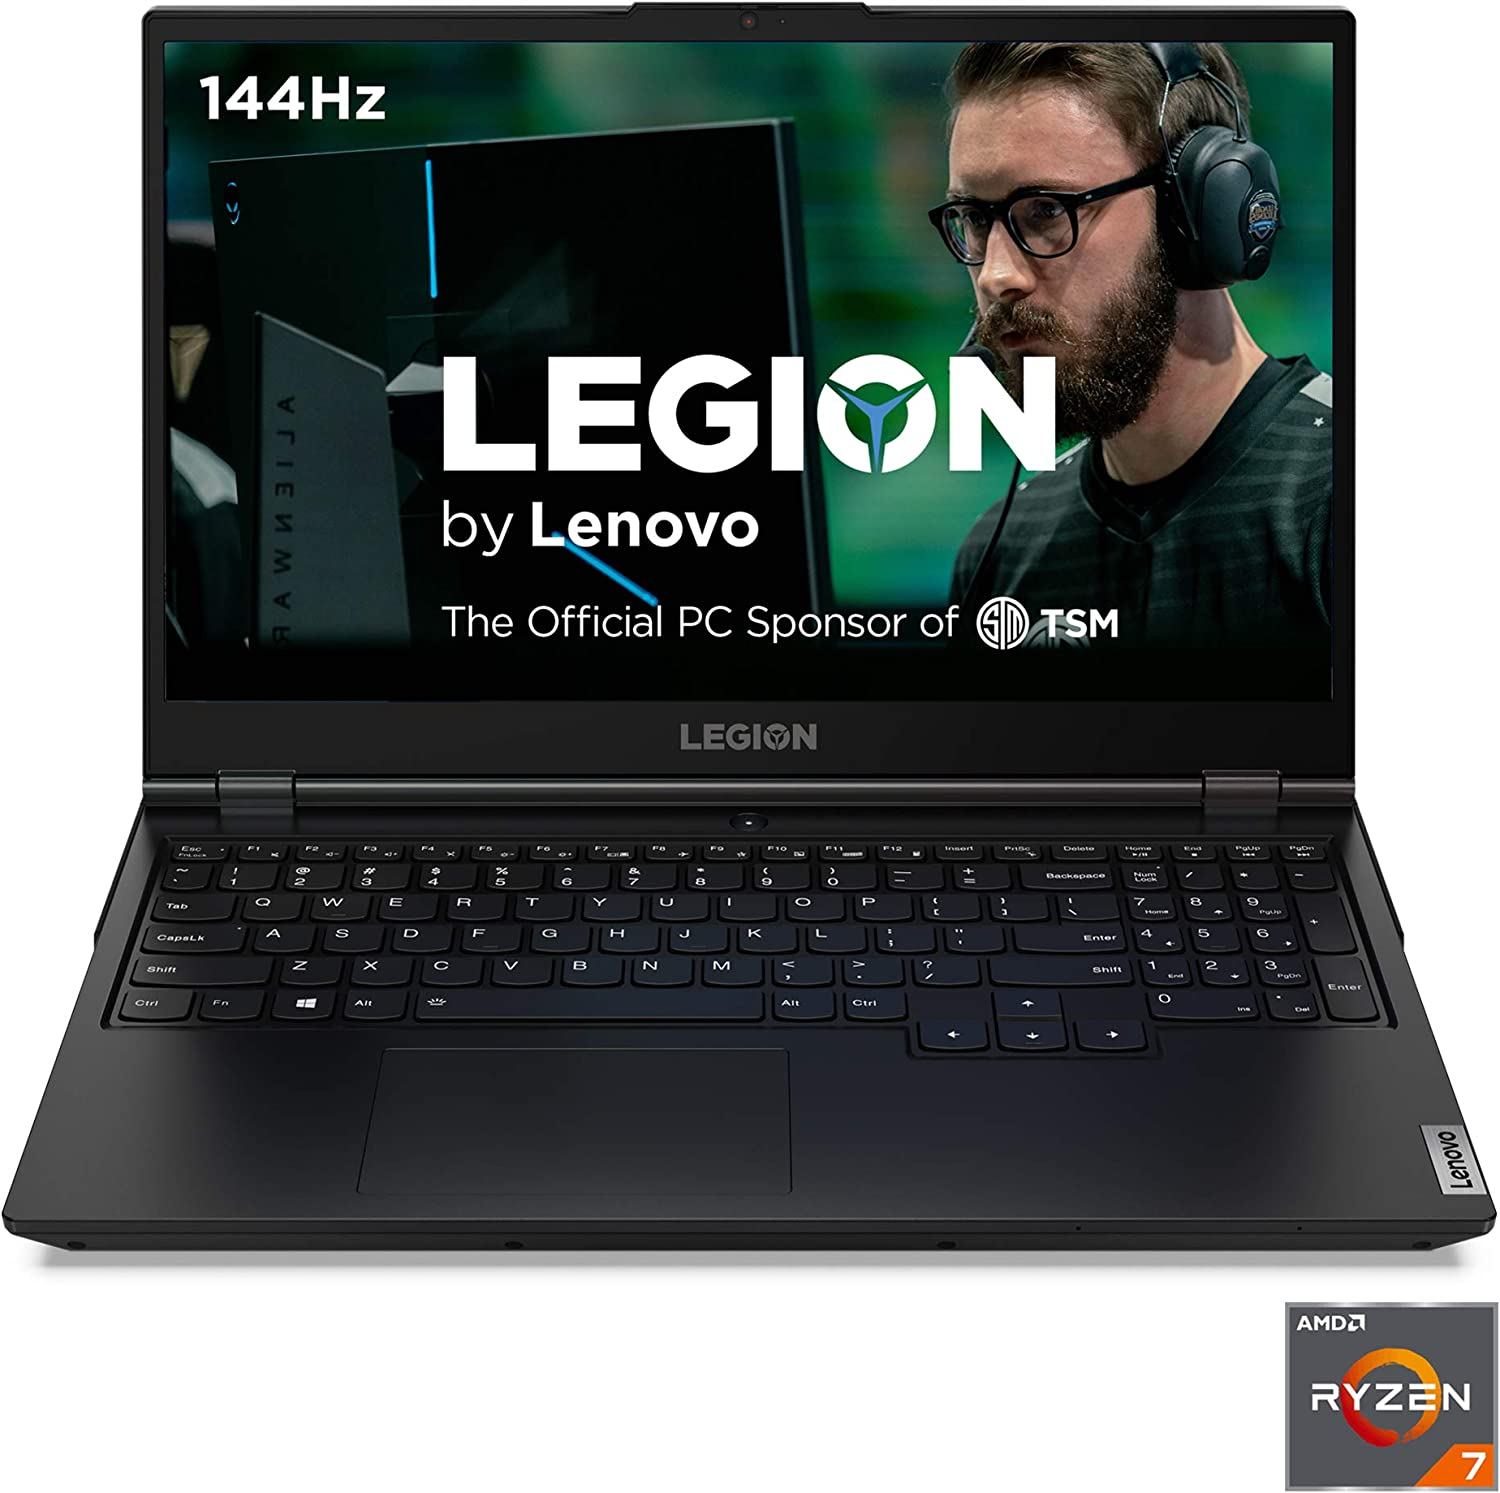 "Lenovo Legion 5 Gaming Laptop, 15"" FHD (1920x1080) IPS Screen, AMD Ryzen 7 4800H Processor, 16GB DDR4, 512GB SSD, NVIDIA GTX 1660Ti, Windows 10, 82B1000AUS, Phantom Black"